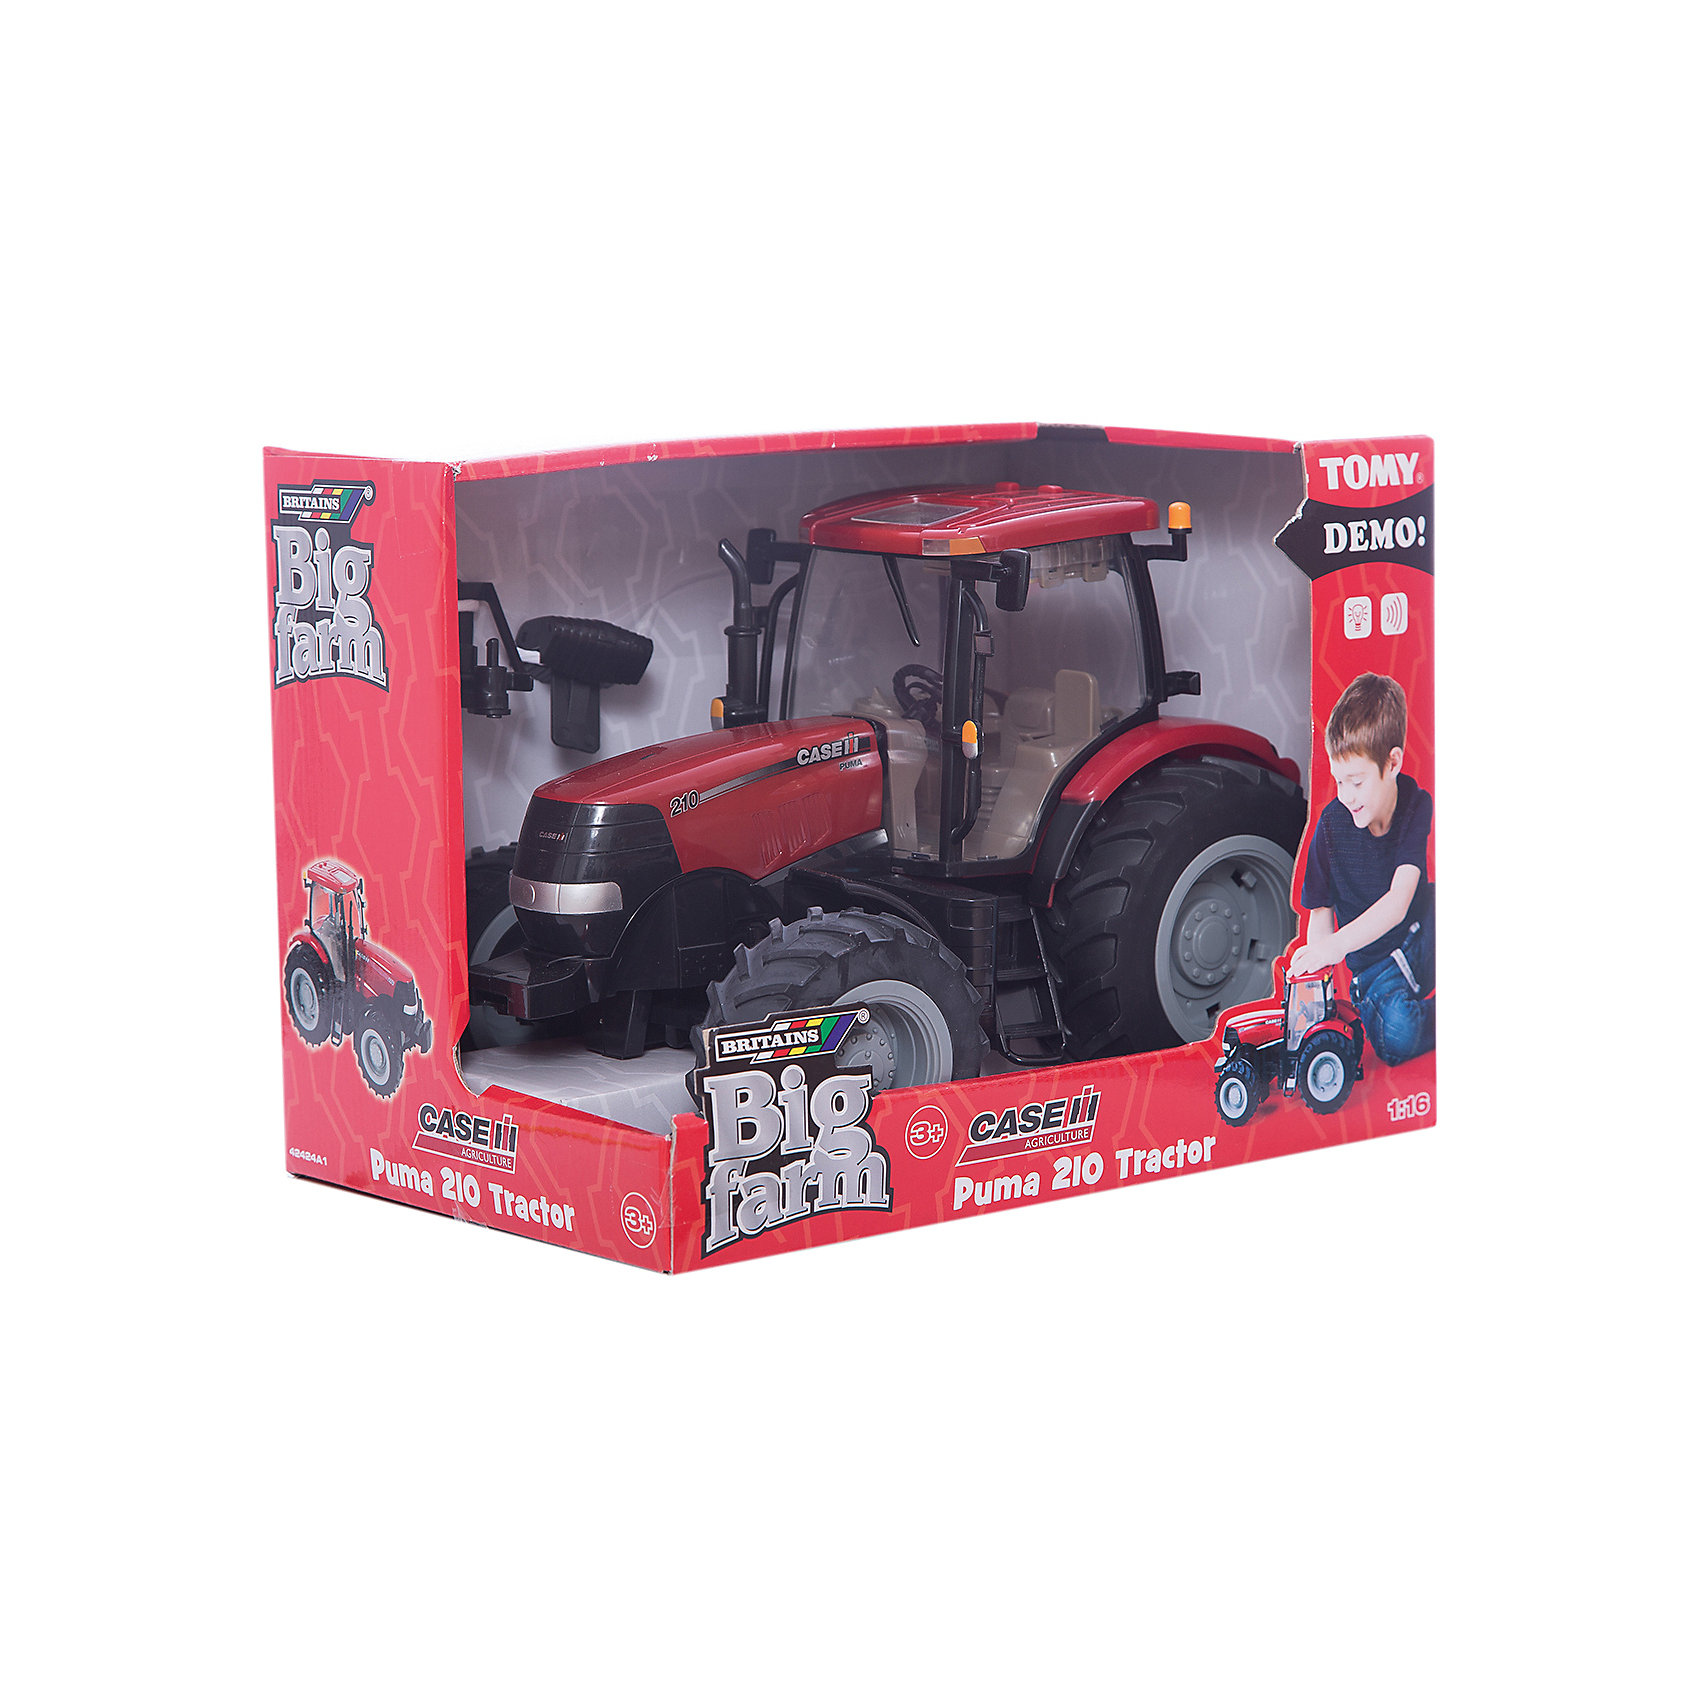 TOMY Трактор Cas IH 210 Puma, TOMY tomy прицеп для самосвала big farm bulk tipping trailer с 3 лет